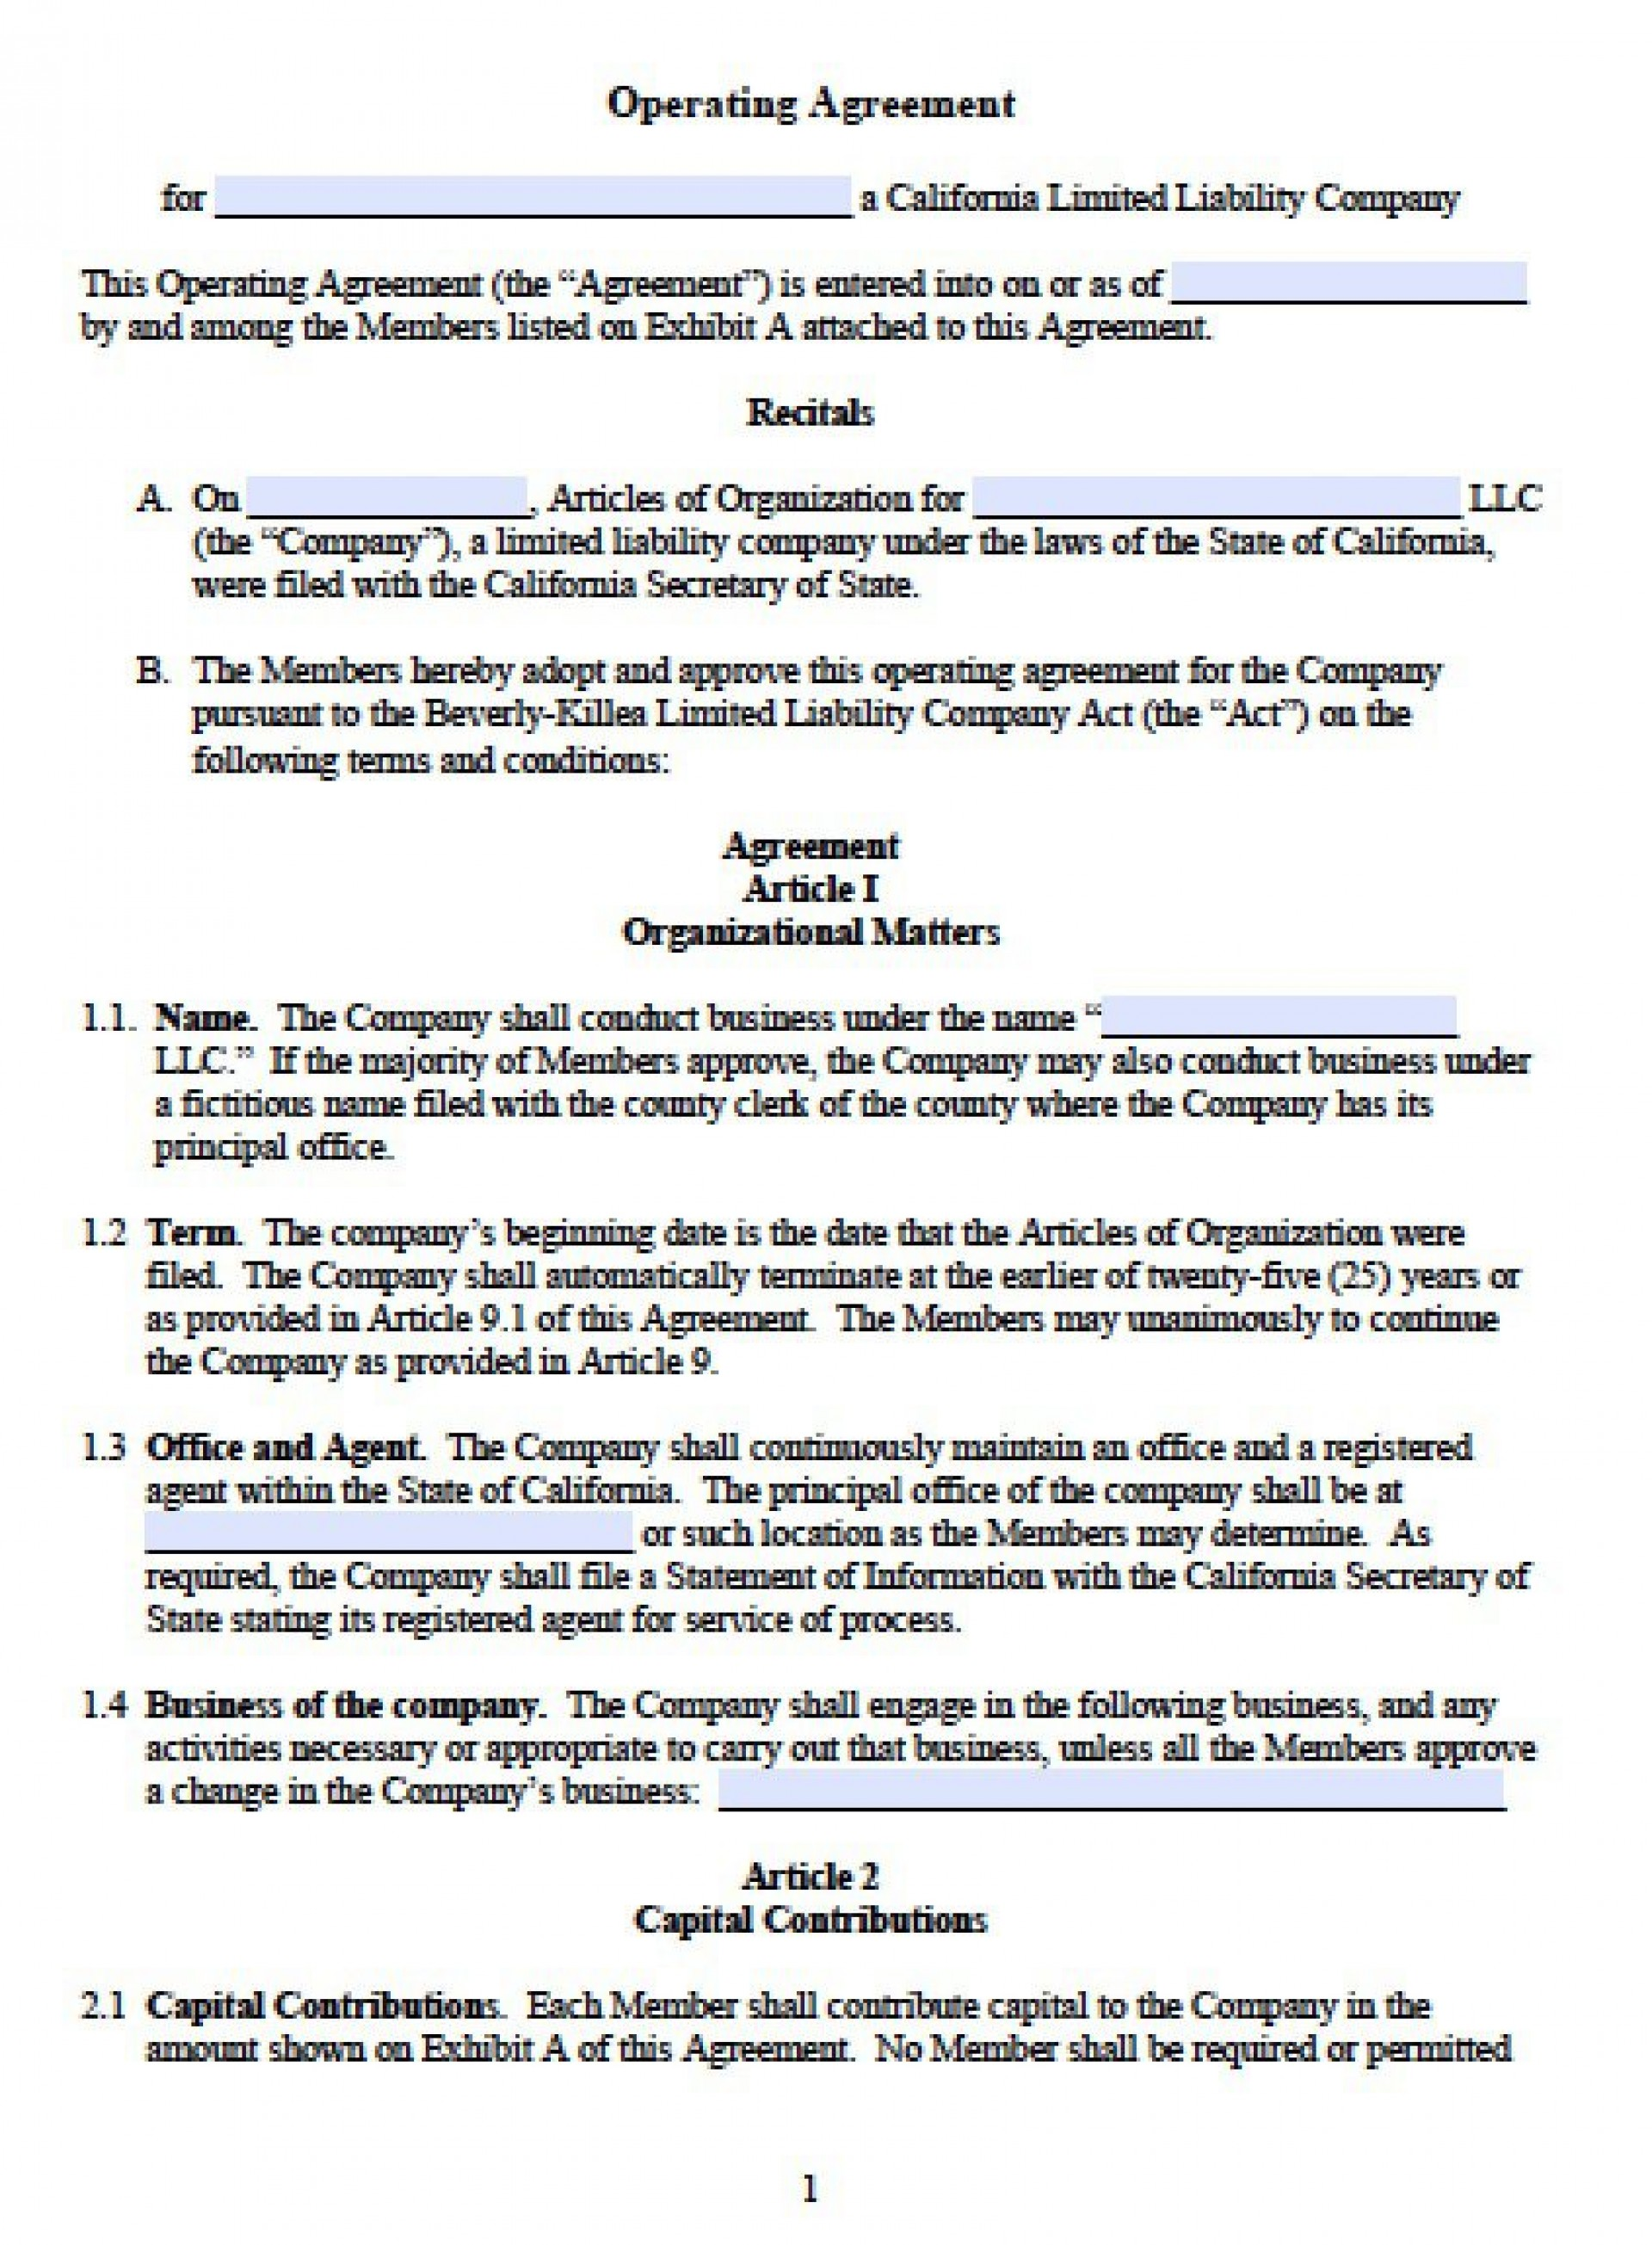 002 Staggering Operating Agreement Template For Llc Picture  Form Florida Texa1920